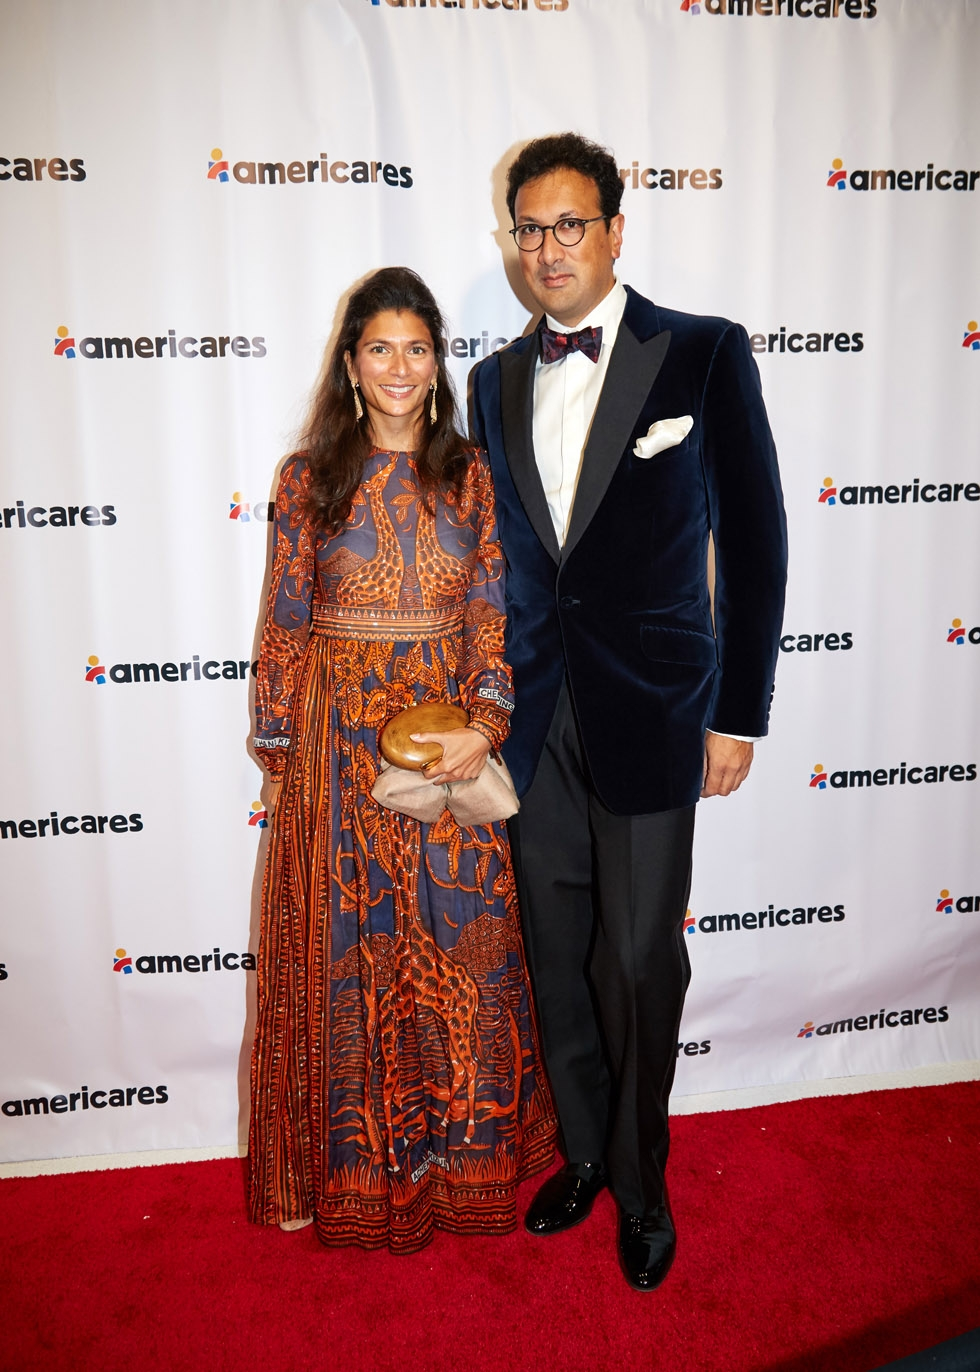 Americares 29th Annual Airlift Benefit  Fairfield County Look